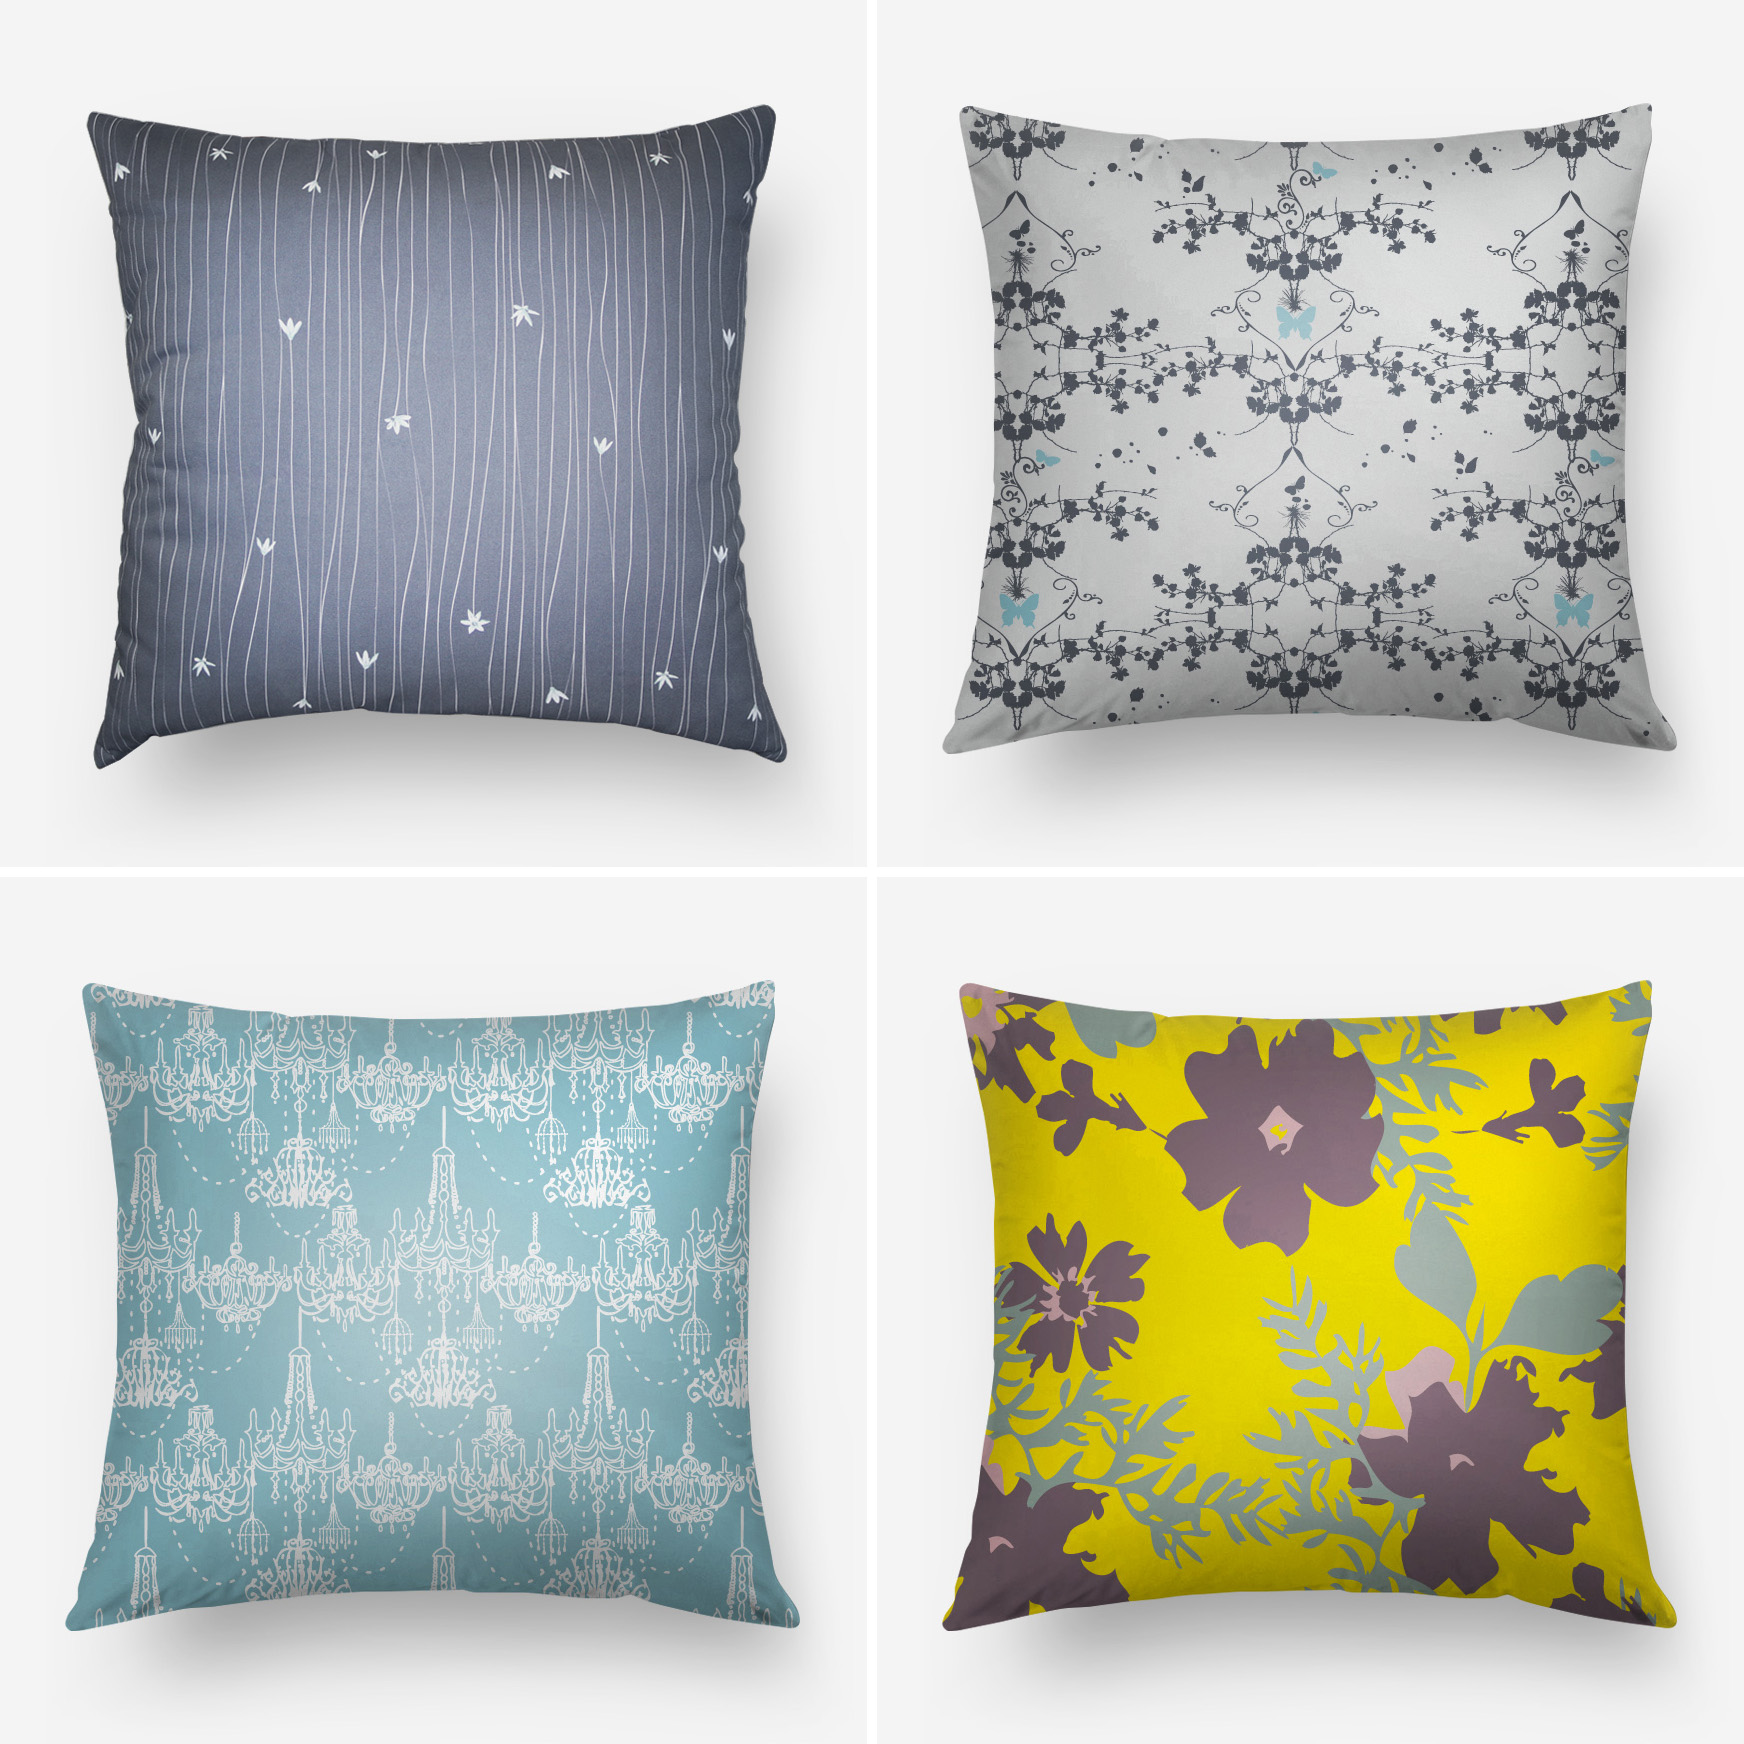 SR_mixed_pillows